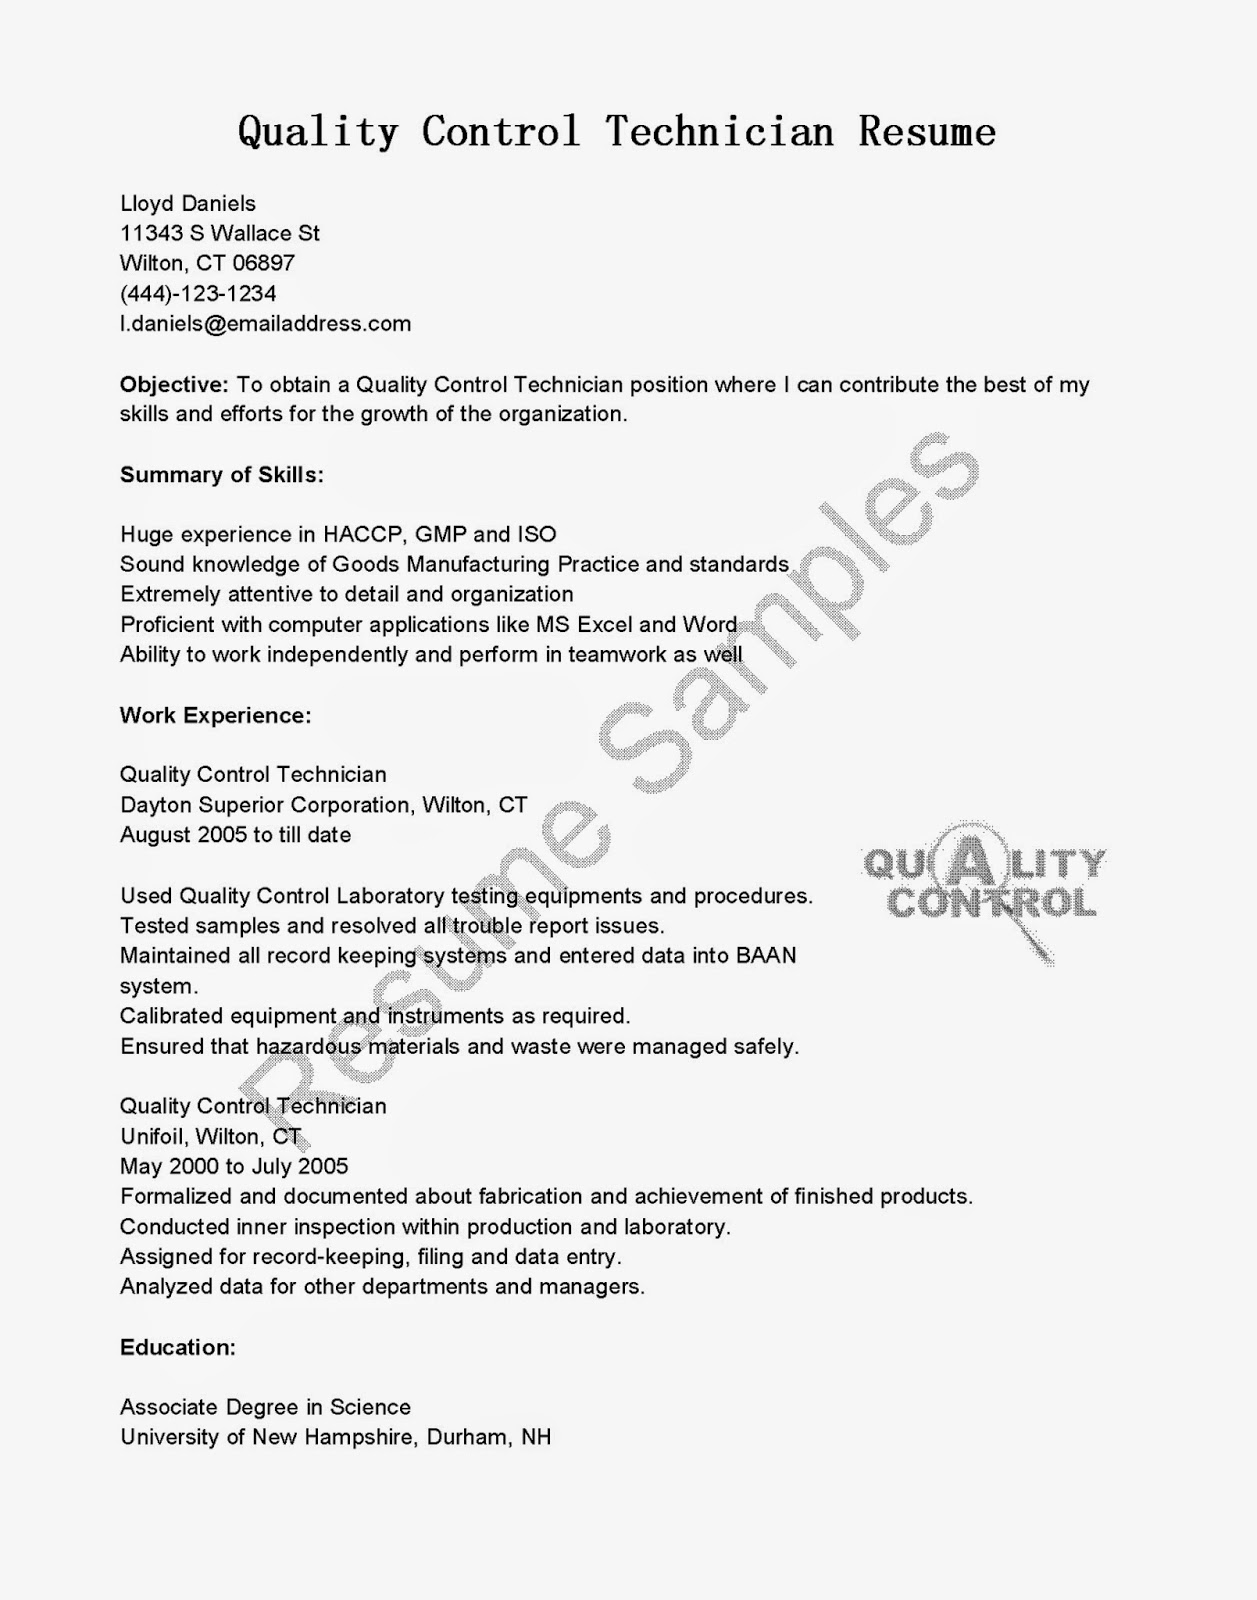 Telecommunications Service Technician Resume Maintenance Cover Letter Your  Own Use This Cover Letter To The Importance